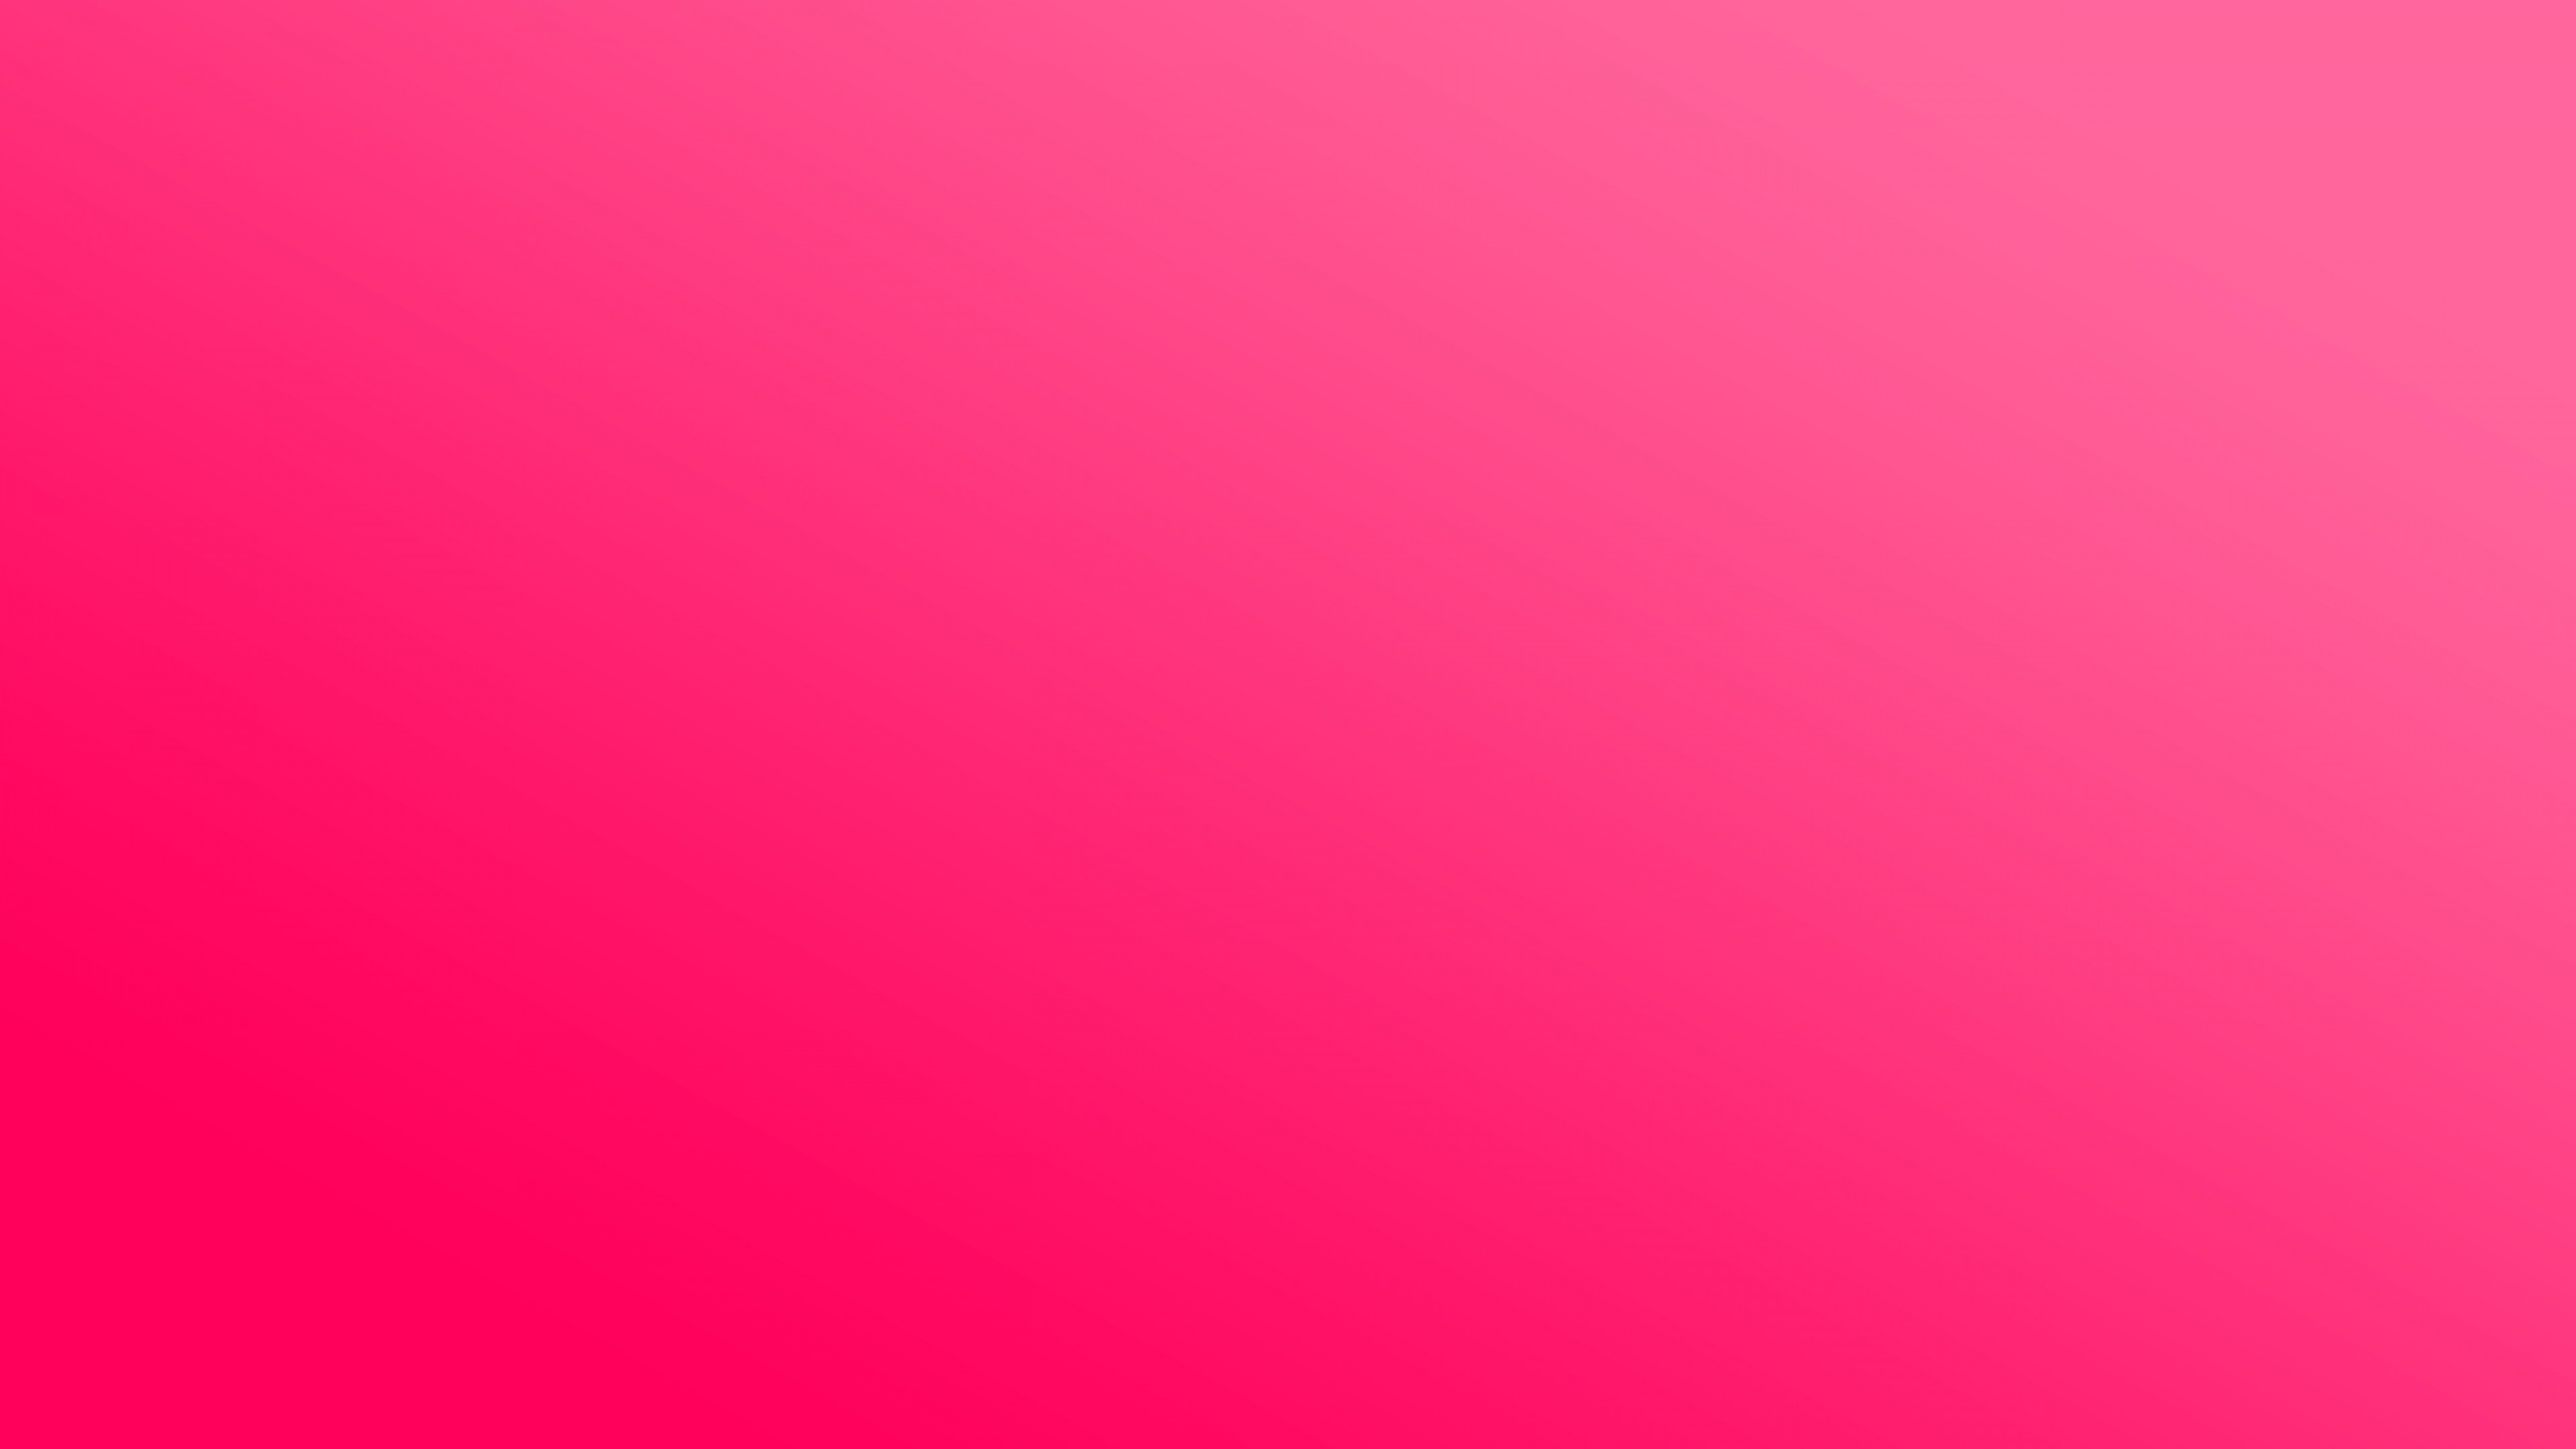 3840x2160 Preview Wallpaper Pink Solid Color Light Bright